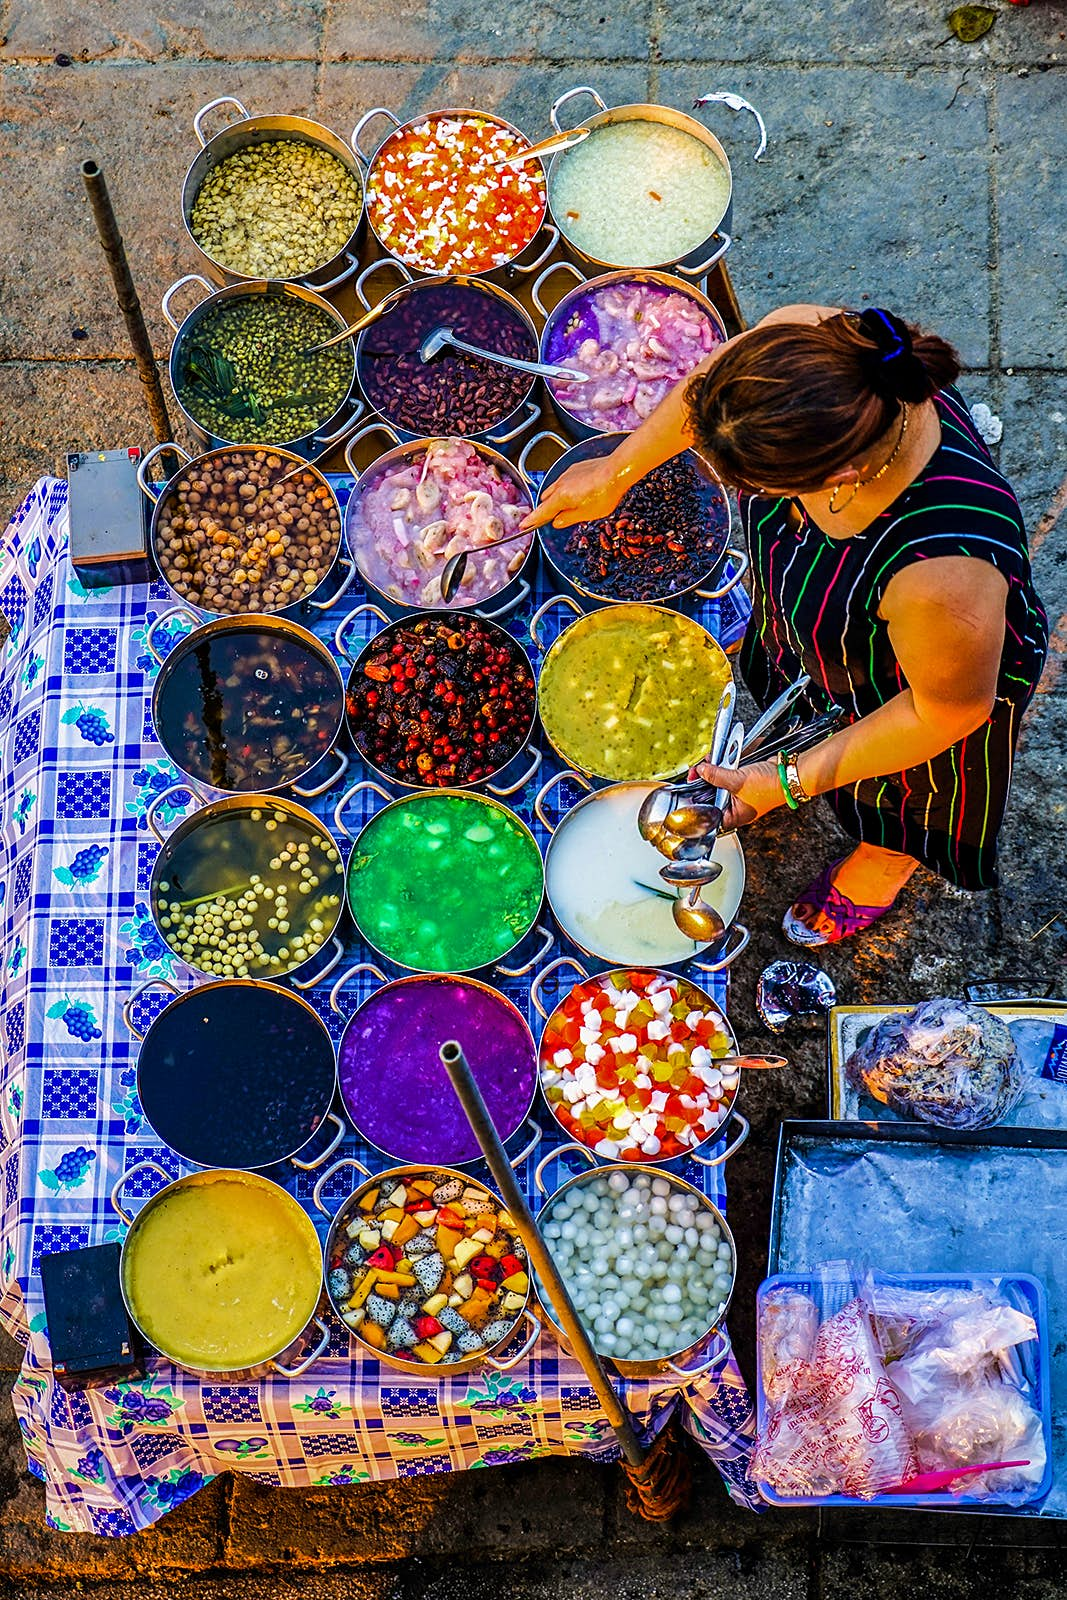 A woman tends to several pots filled with different-colored sweets © James Pham / Lonely Planet